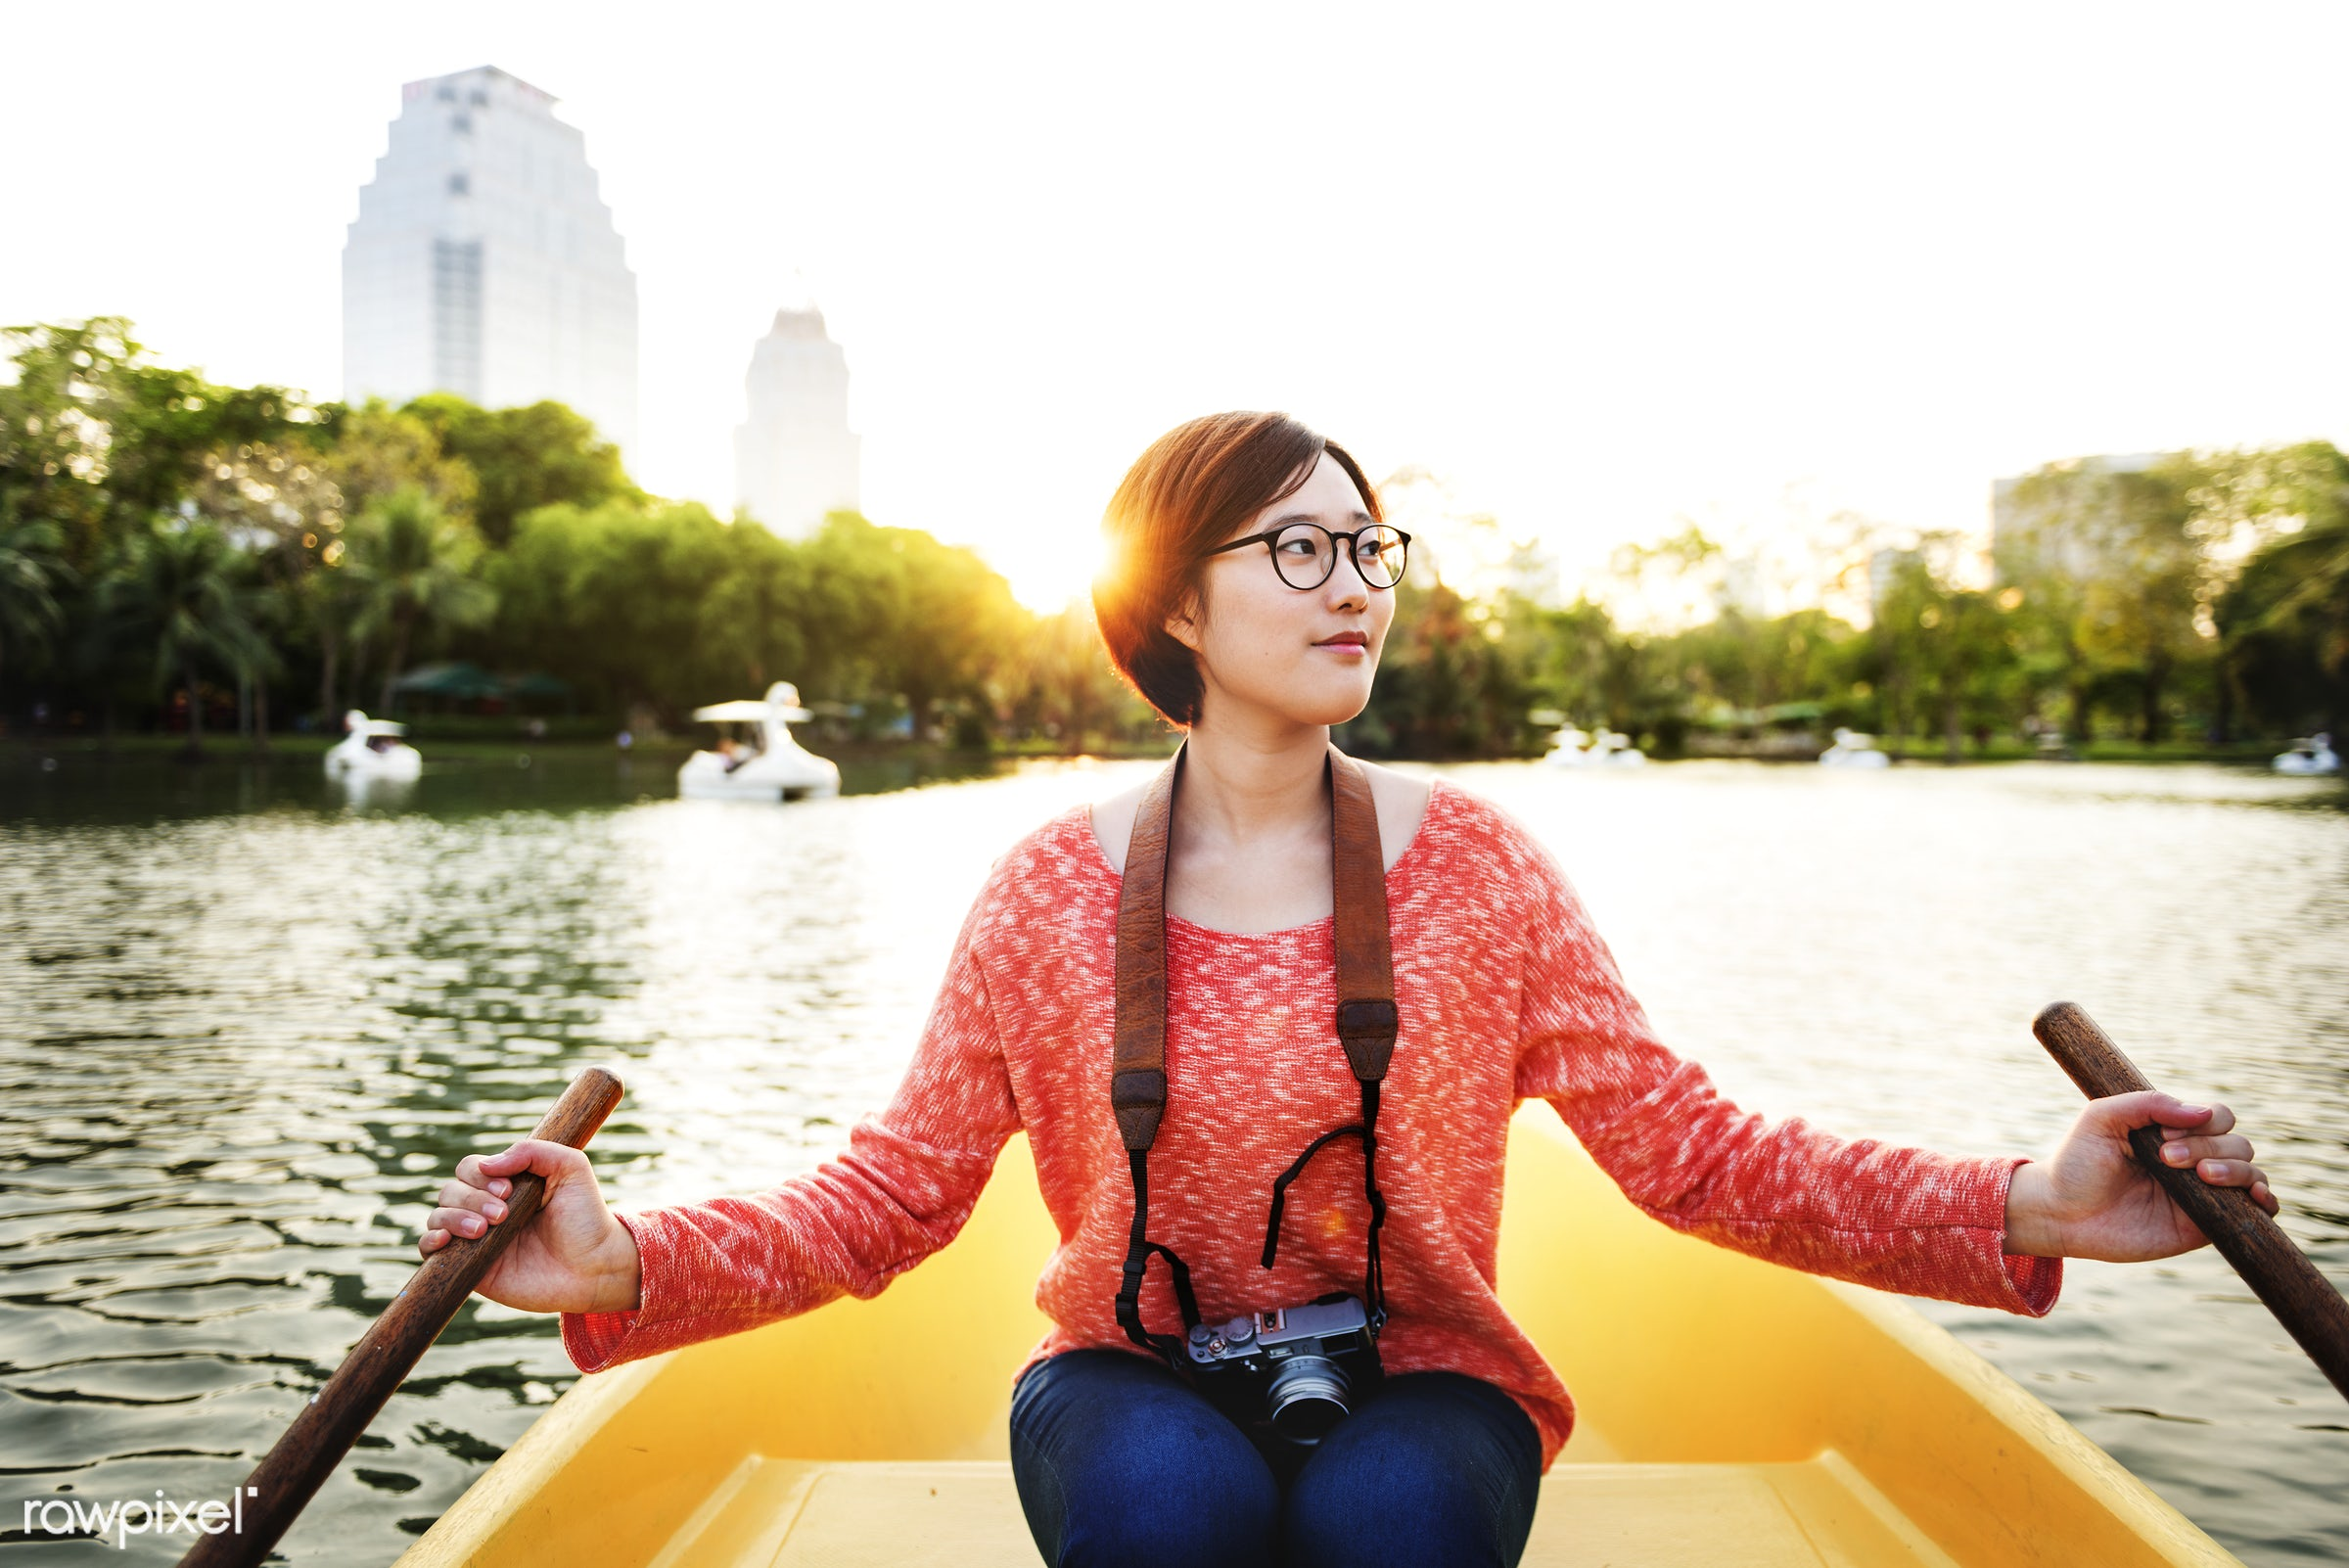 activity, adventure, asian, attractive, beautiful, boat, boating, camera, casual, city, enjoyment, excursion, free, fun,...